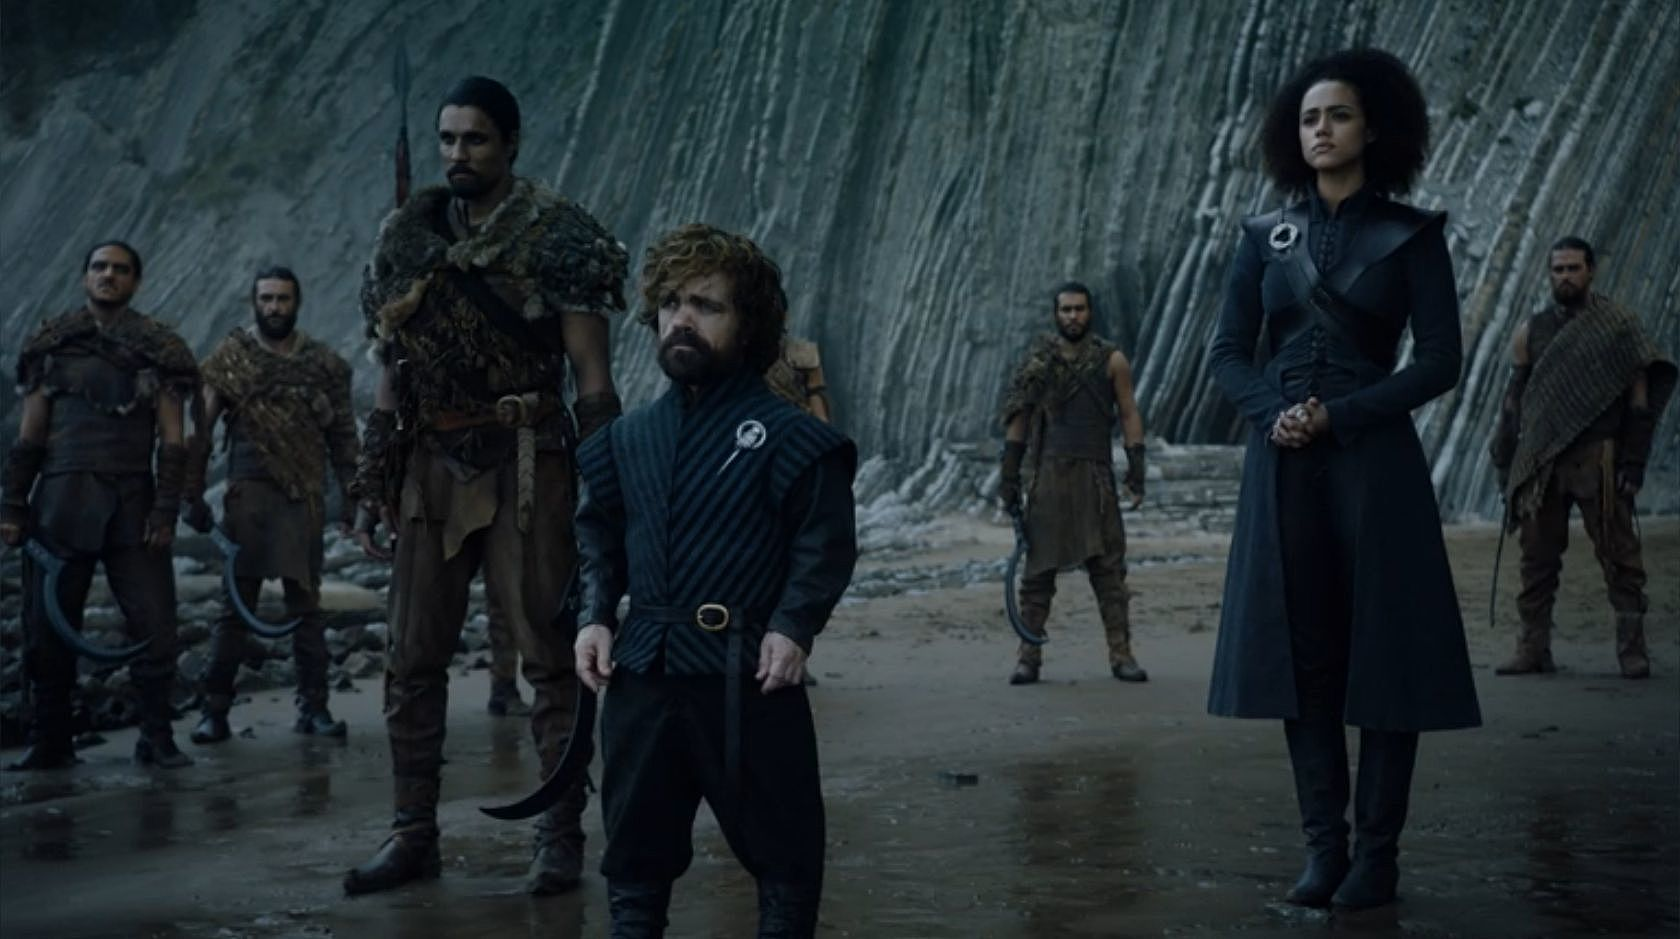 """Greeting Jon Snow at Dragonstone. Missandei, """"the queen's most trusted adviser"""" is placed behind Tyrion in order of precedence and on the same plane as a Dothraki warrior. Her clothes strongly reference her queen's latest sartorial statements crossed with her warrior lover Grey Worm's.She has a status brooch for House Targaryen, a circle of three dragons, while Tyrion wears the brooch of a Hand, the senior advisor to a ruler. She holds the position of a Chamberlain but not necessarily the ruler's most trusted advisor."""